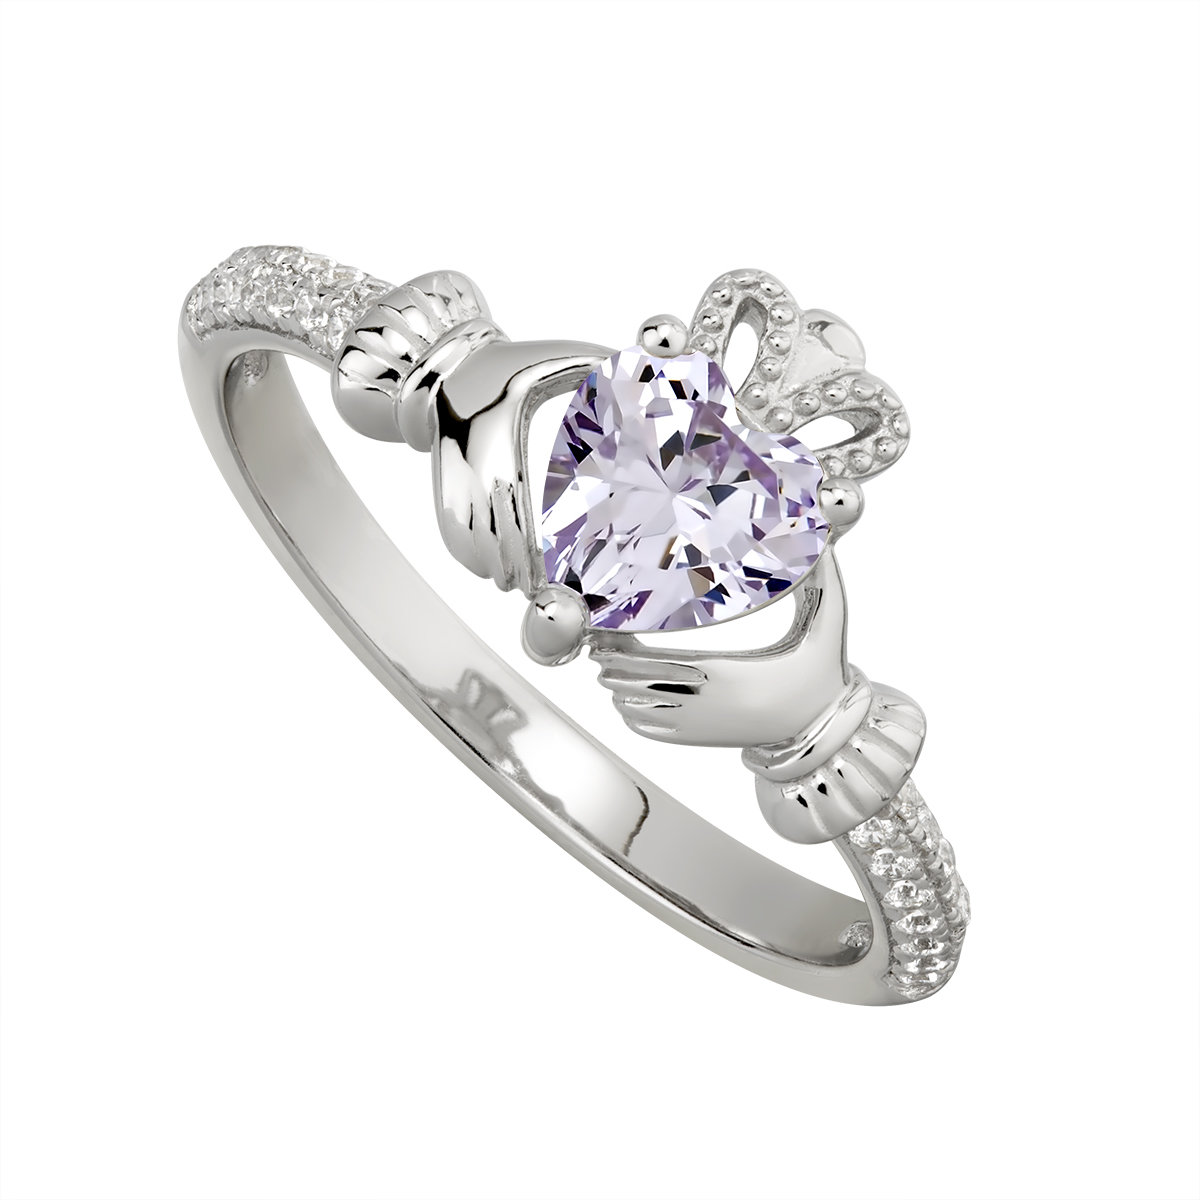 sterling silver claddagh ring june birthstone s2106206 from Solvar